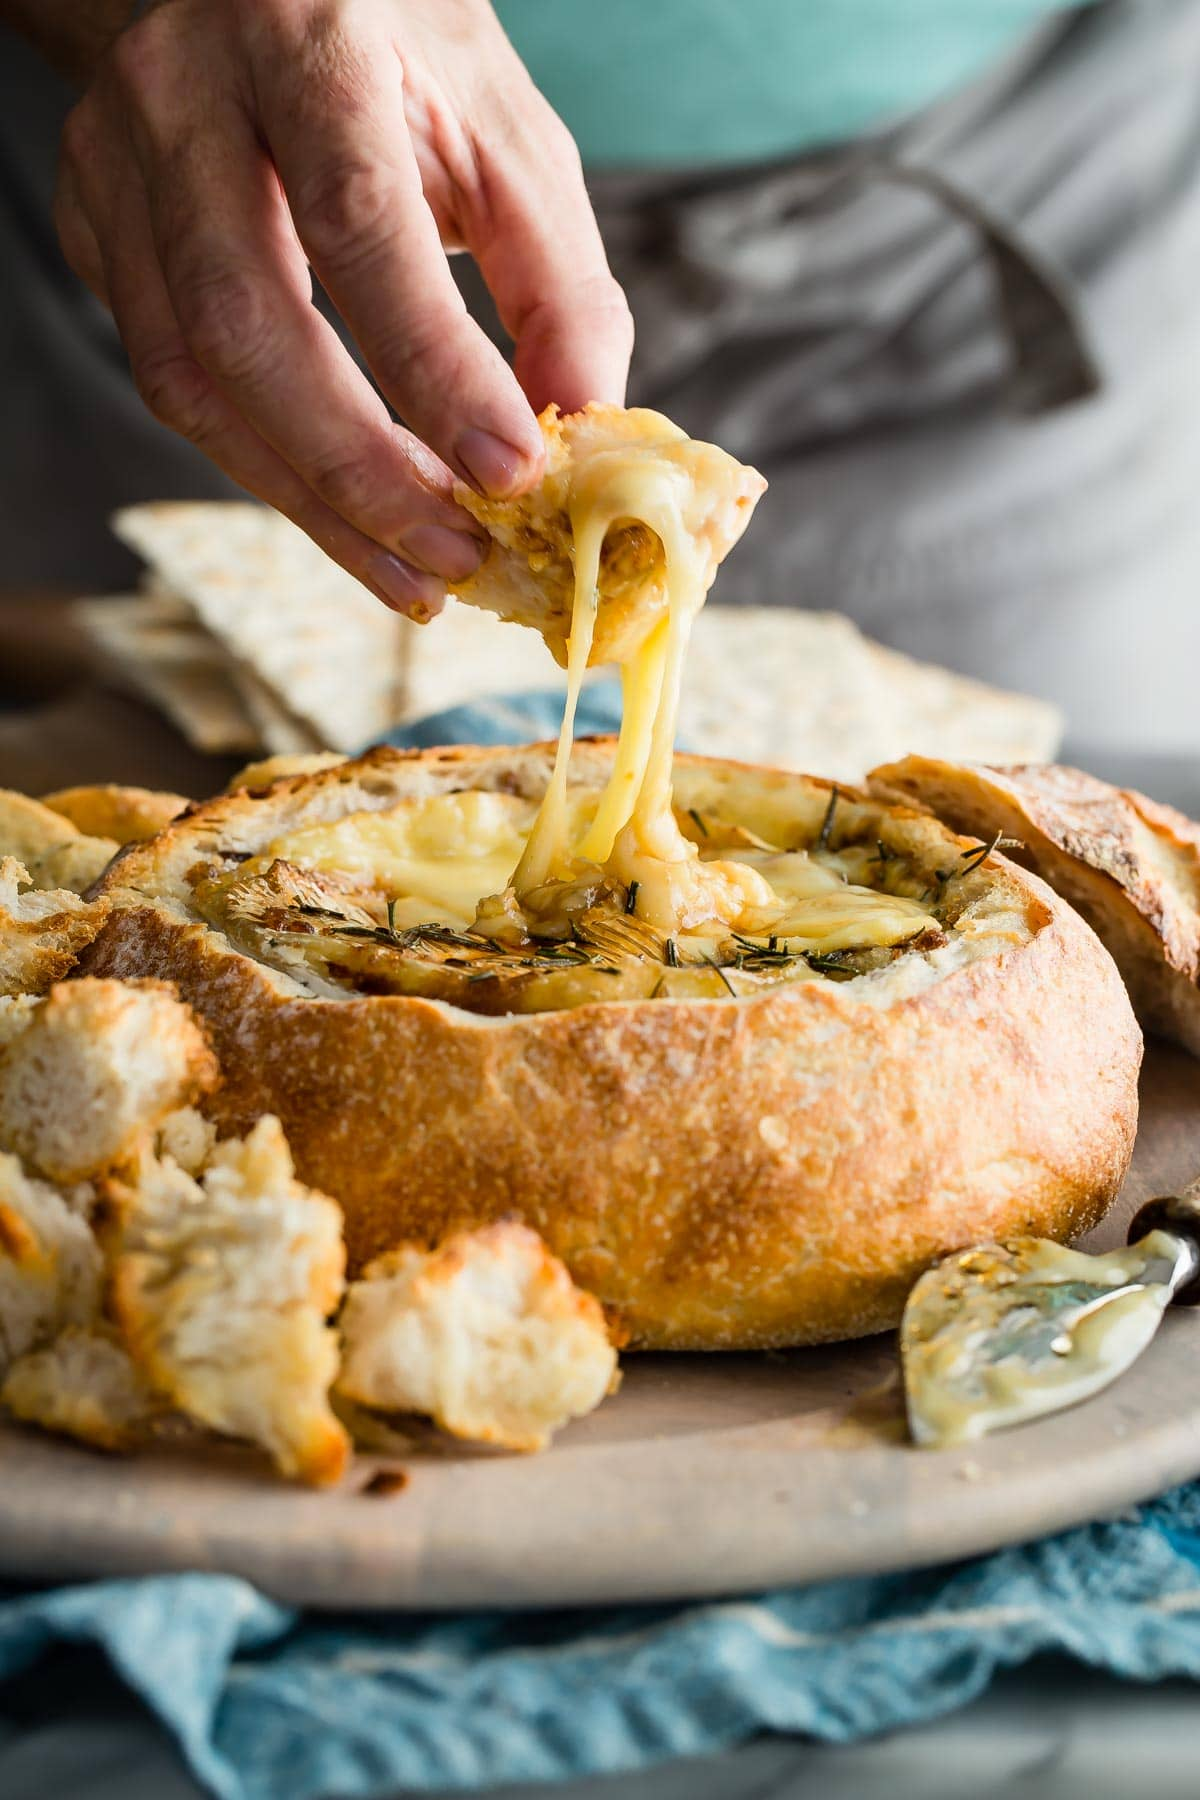 The ultimate holiday party appetizer. Baked Brie in a Sourdough Bread Bowl topped with brown sugar, white wine and fresh rosemary! #bakedbrie #cheese #holidayrecipes